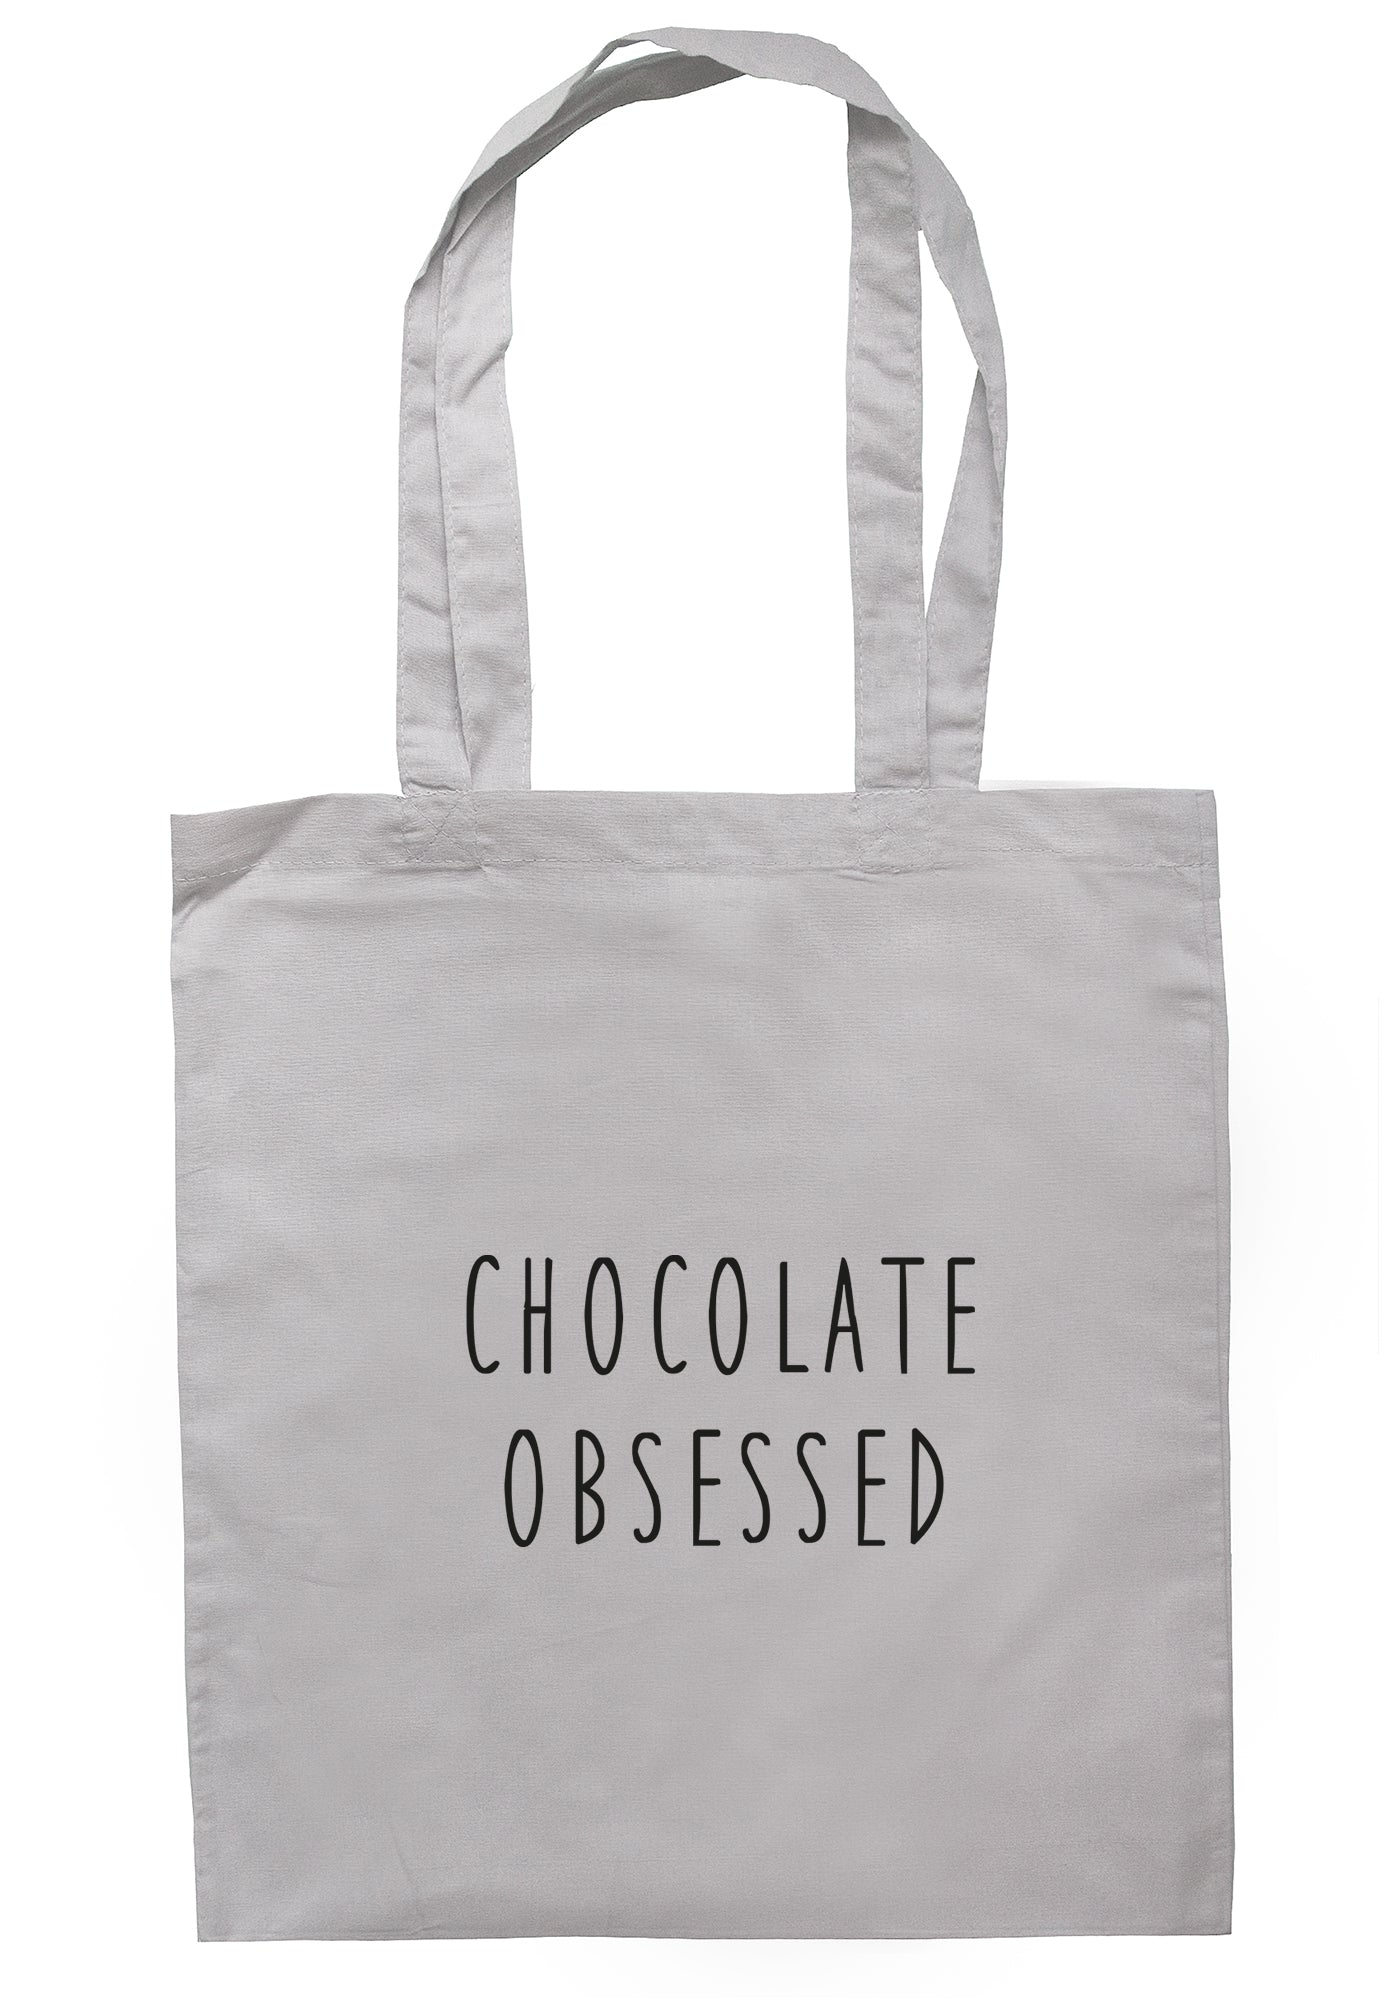 Chocolate Obsessed Tote Bag S1078 - Illustrated Identity Ltd.